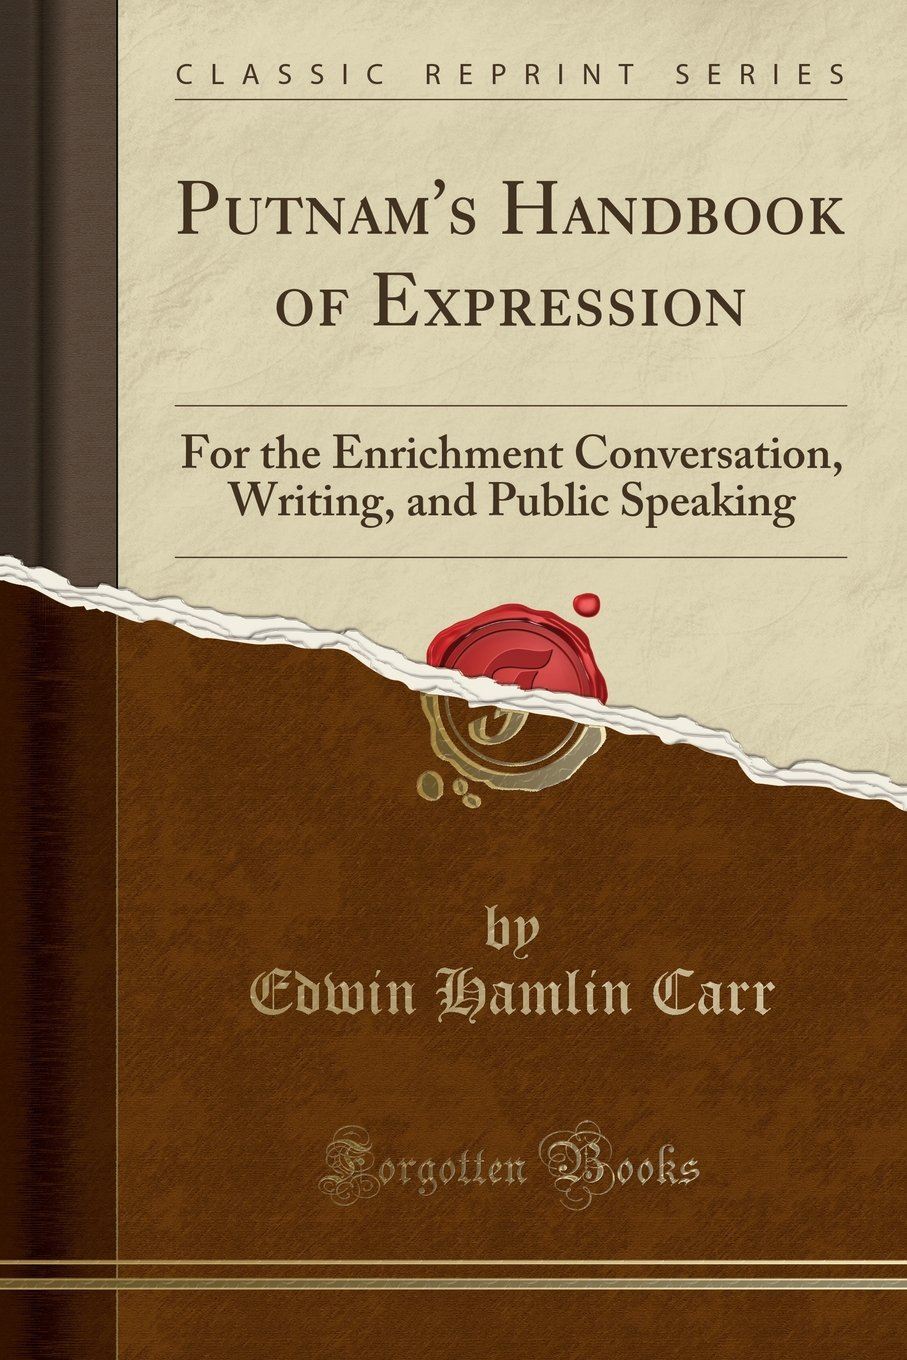 Putnam's Handbook of Expression: For the Enrichment Conversation, Writing, and Public Speaking (Classic Reprint)